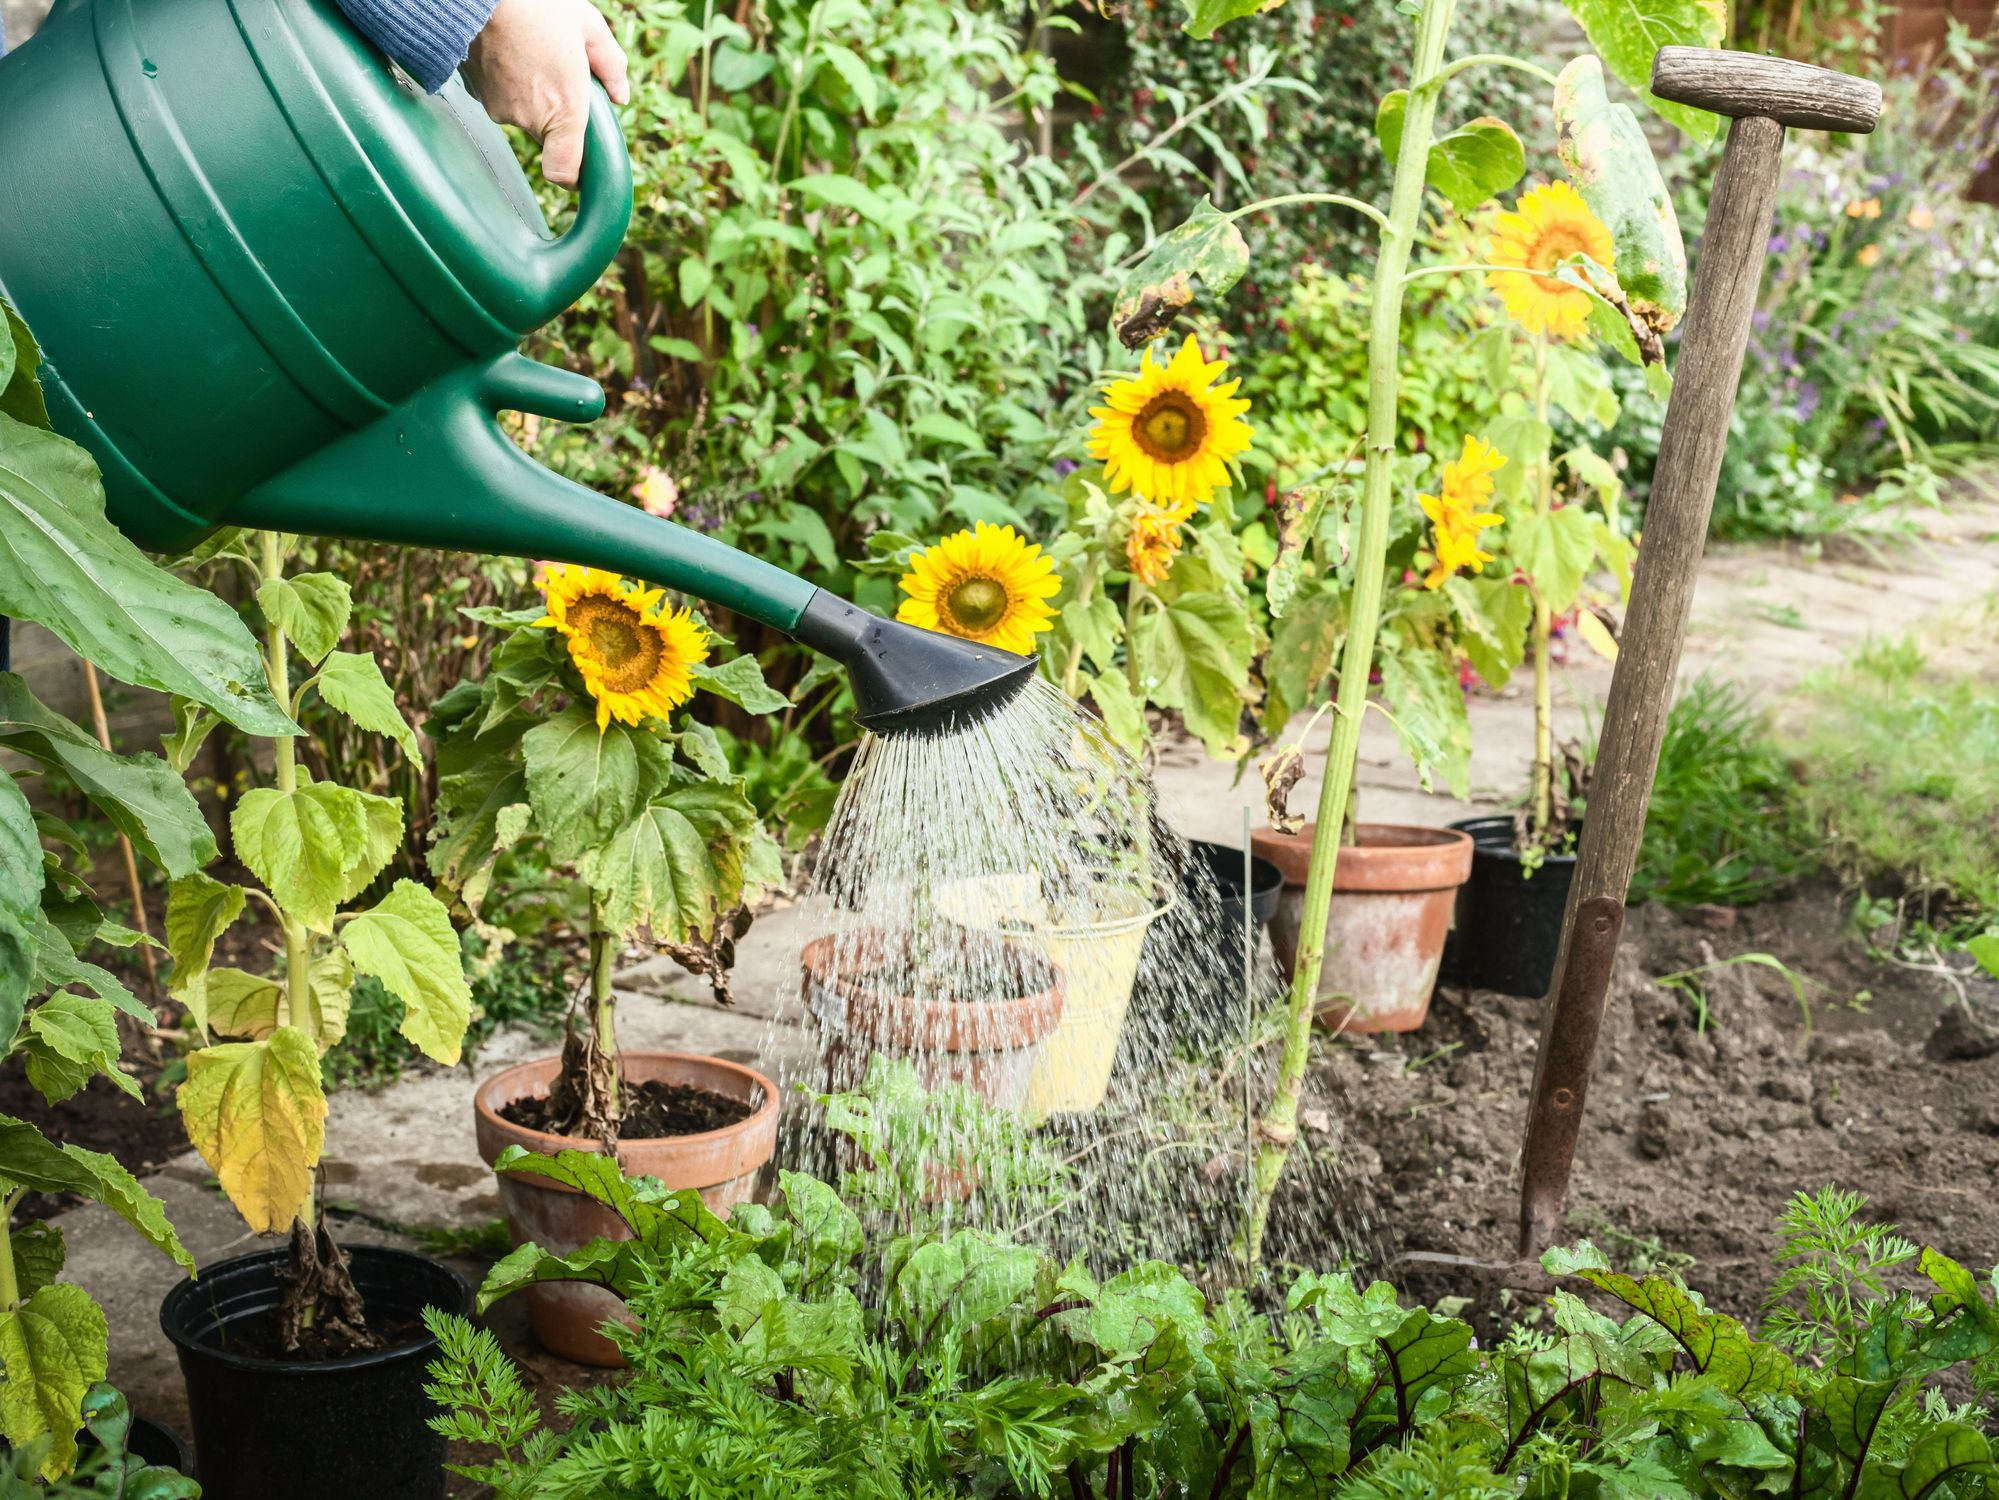 The one thing you should do in your garden ahead of Brexit, according to Gardeners' World presenter Carol Klein